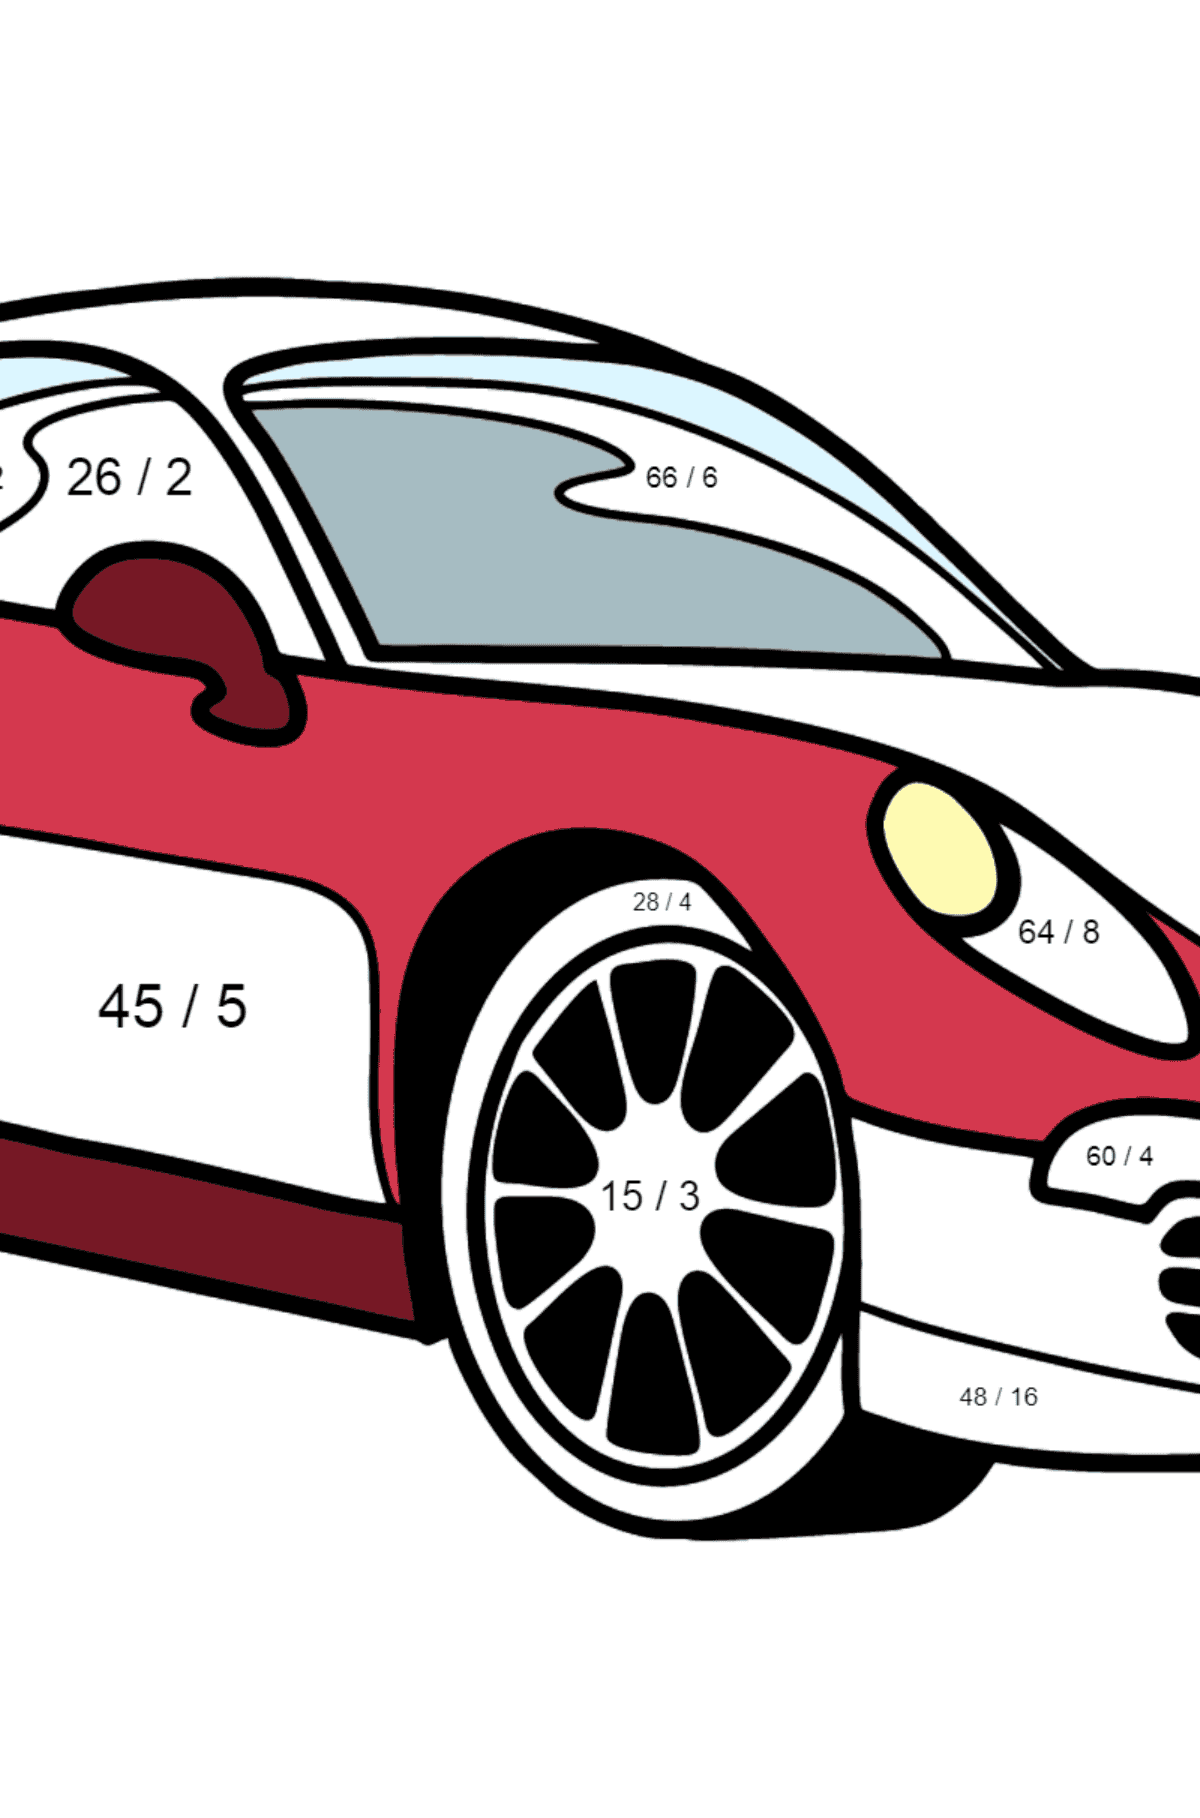 Porsche Cayman Sports Car coloring page - Math Coloring - Division for Kids